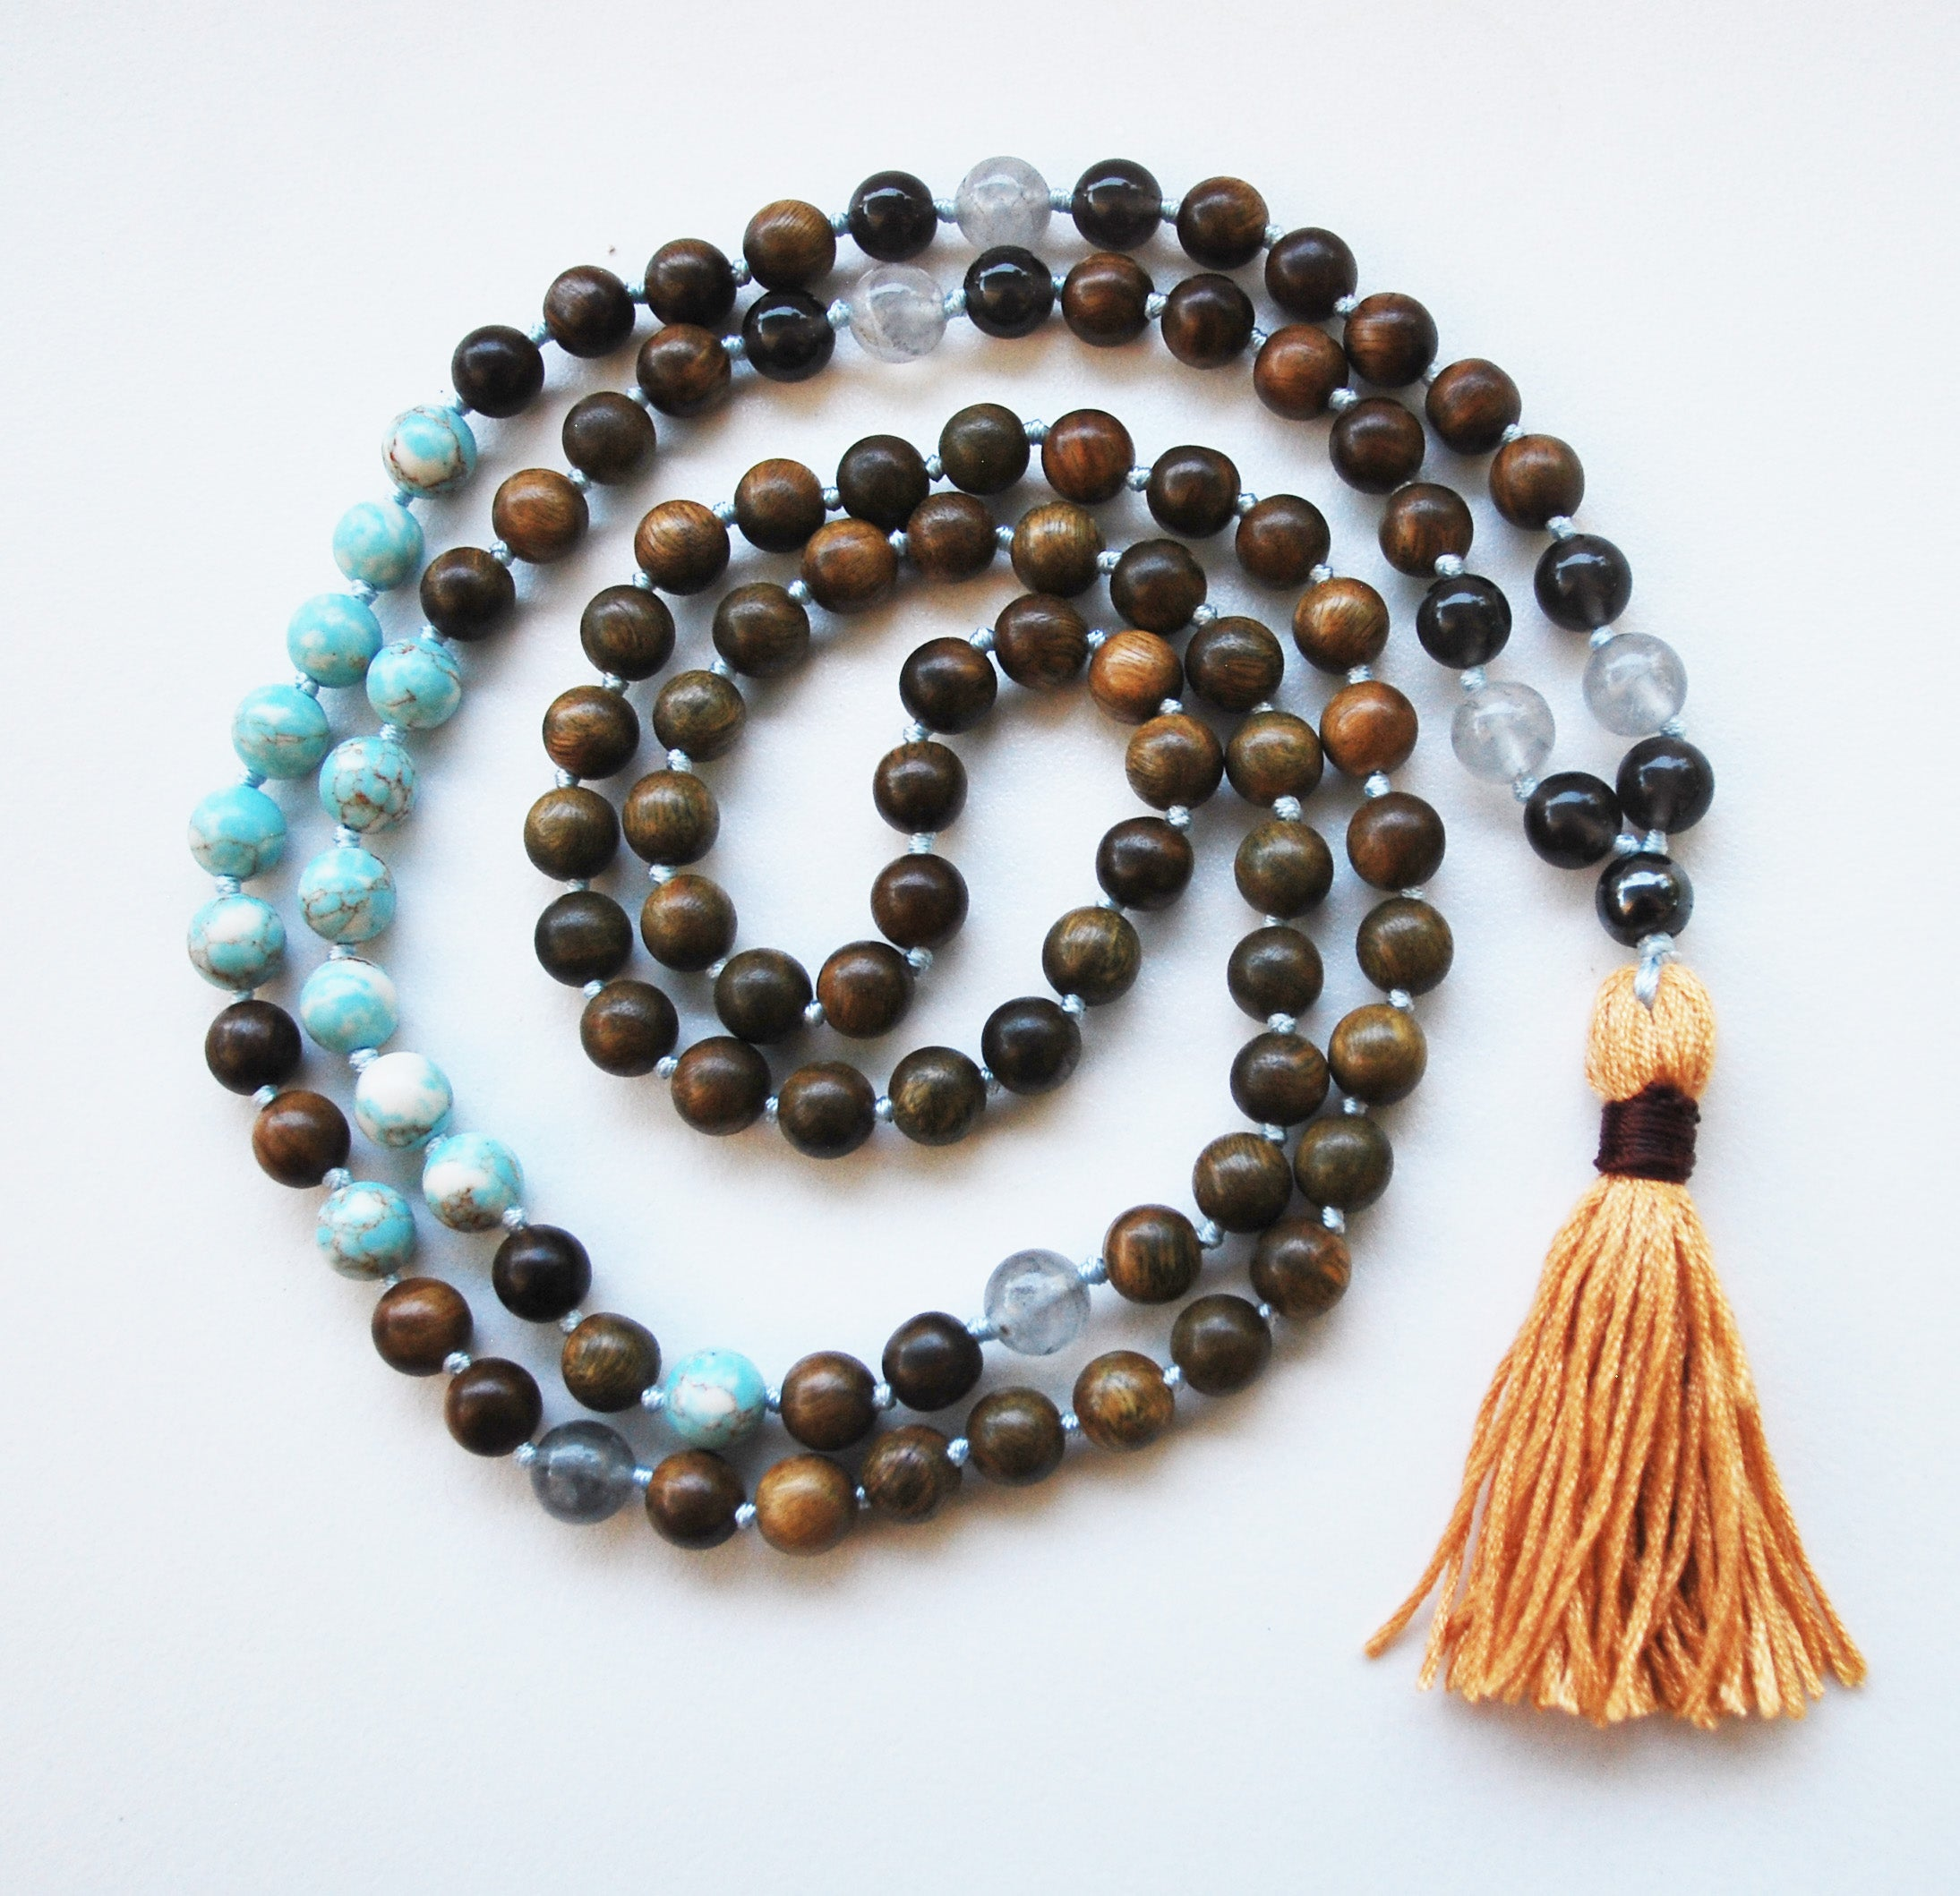 8mm Green Sandalwood & Blue Turquoise 108 Knotted Mala Necklace with Cotton Tassel